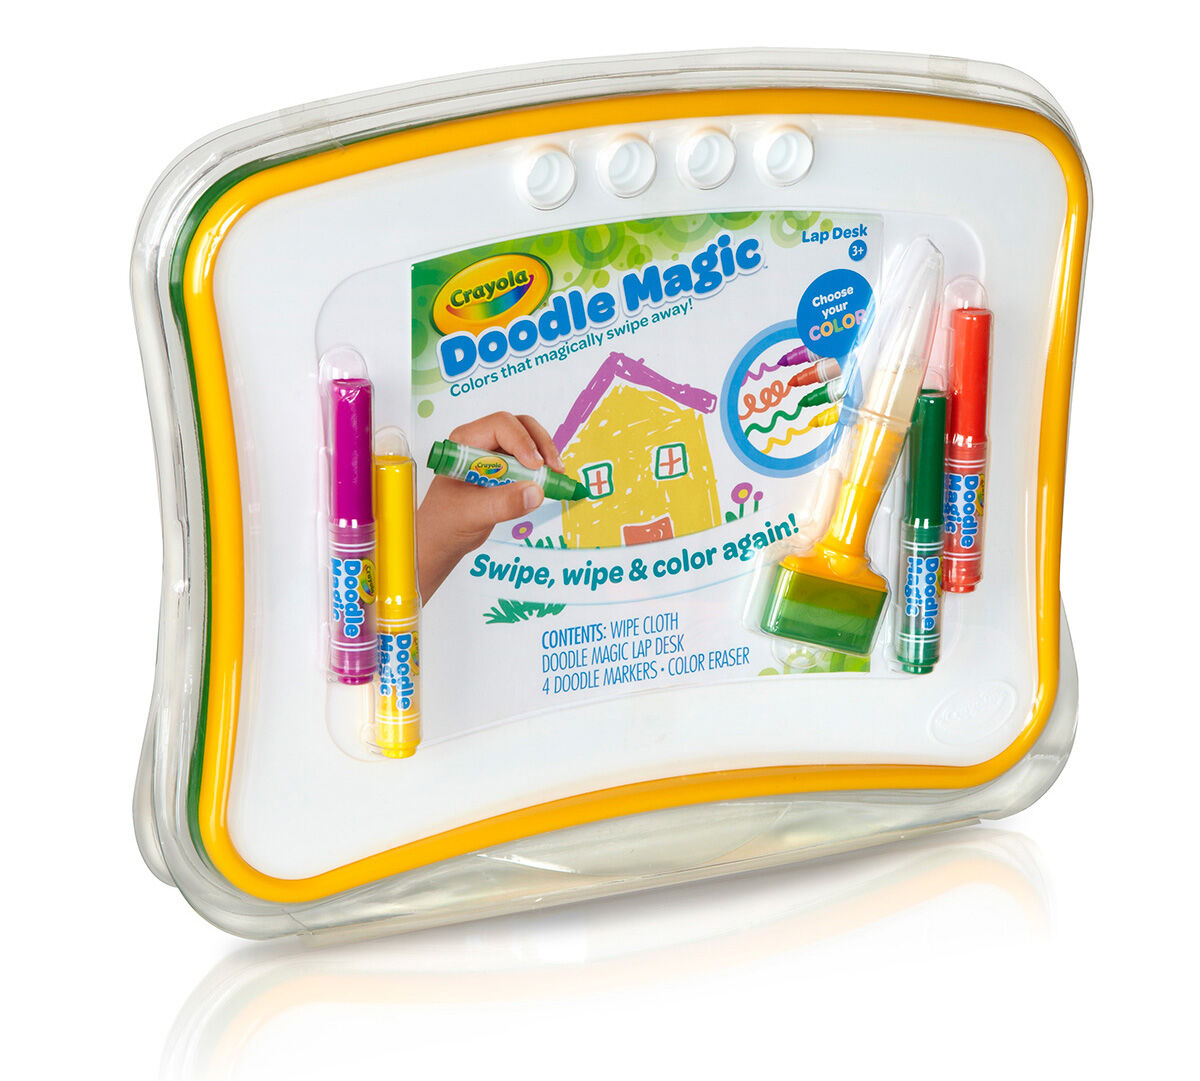 Crayola Doodle Magic Lap Desk Swipe Away Markers Childrens Creative Toy Gift